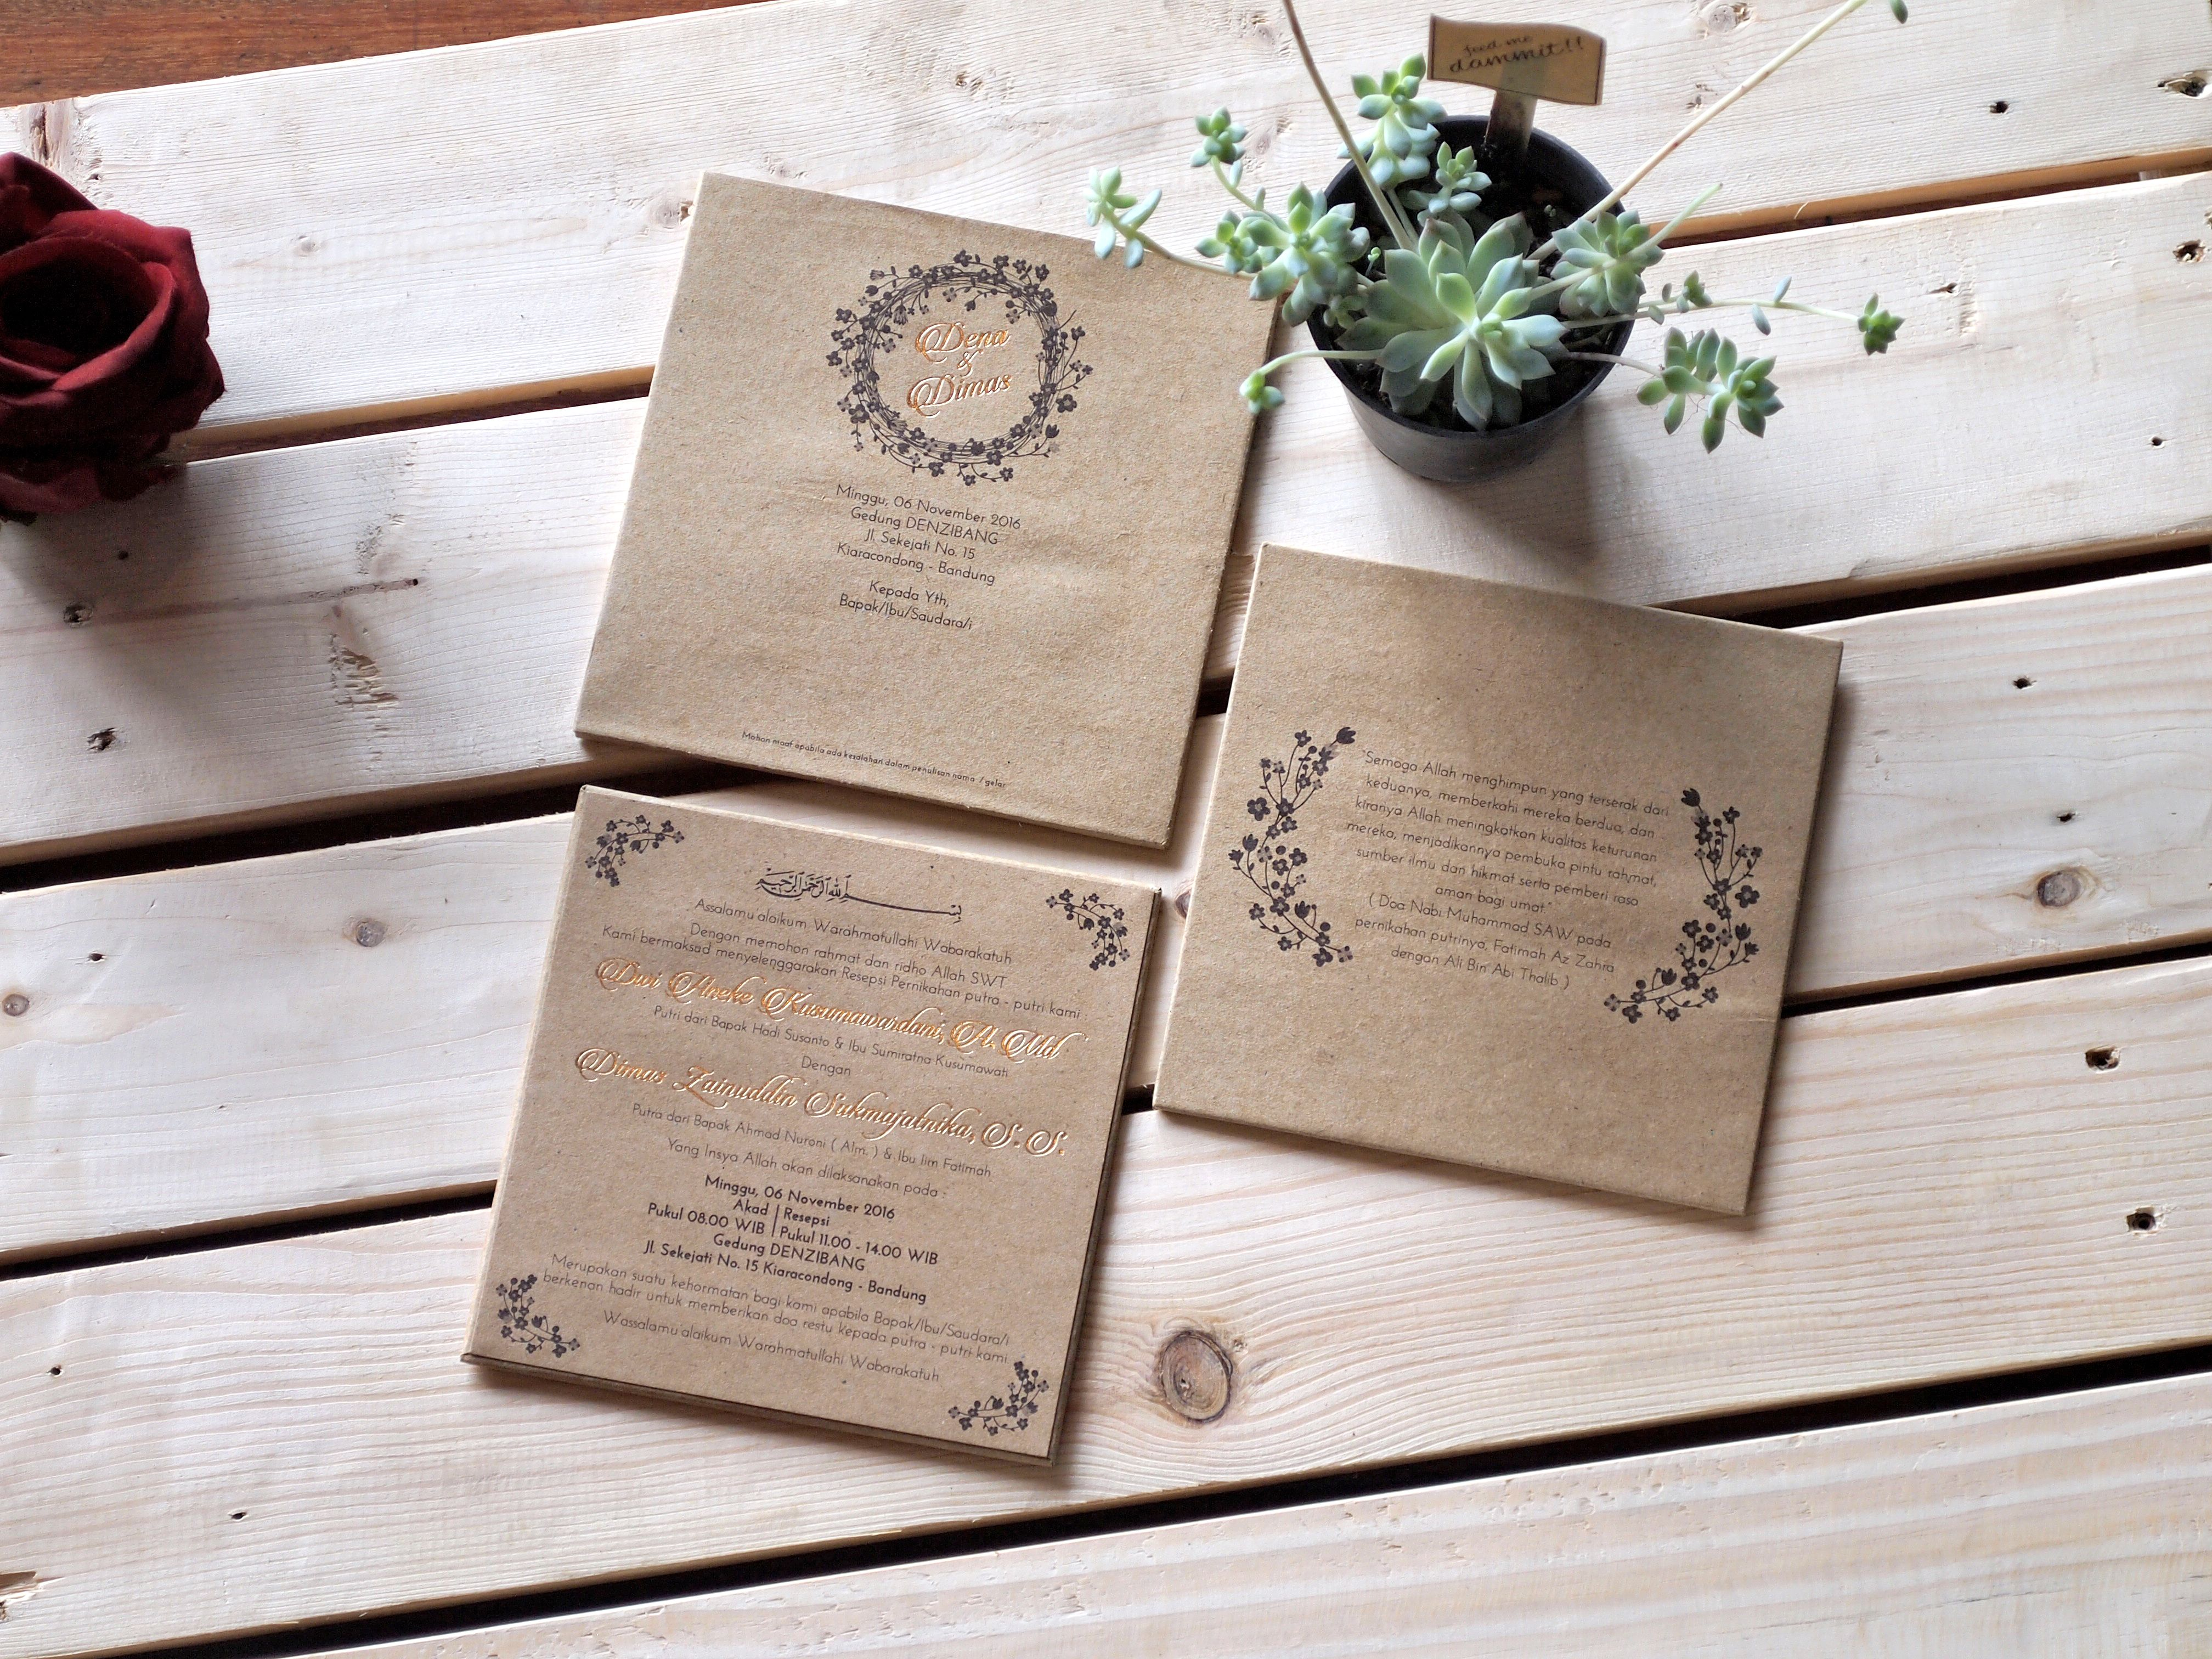 Wedding invitation cards rustic themed decorated with the name of wedding invitation cards rustic themed decorated with the name of shiny gold look simple and natural monicamarmolfo Choice Image